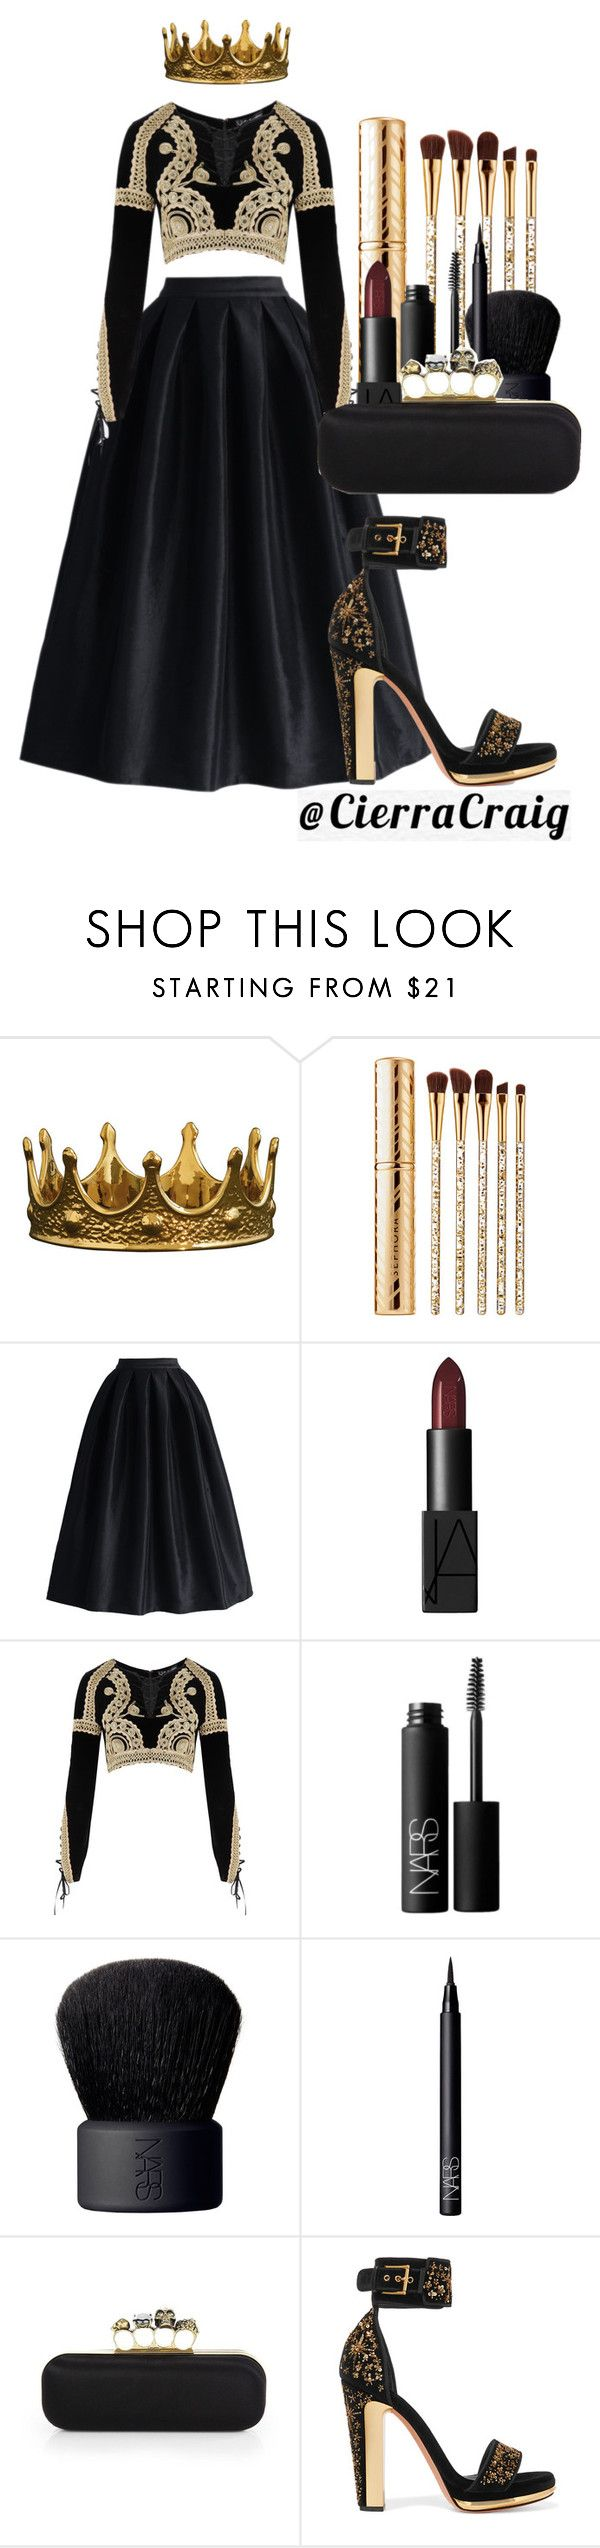 """""""Style Icon"""" by cierracraig ❤ liked on Polyvore featuring Sephora Collection, La Diva, NARS Cosmetics, For Love & Lemons and Alexander McQueen"""